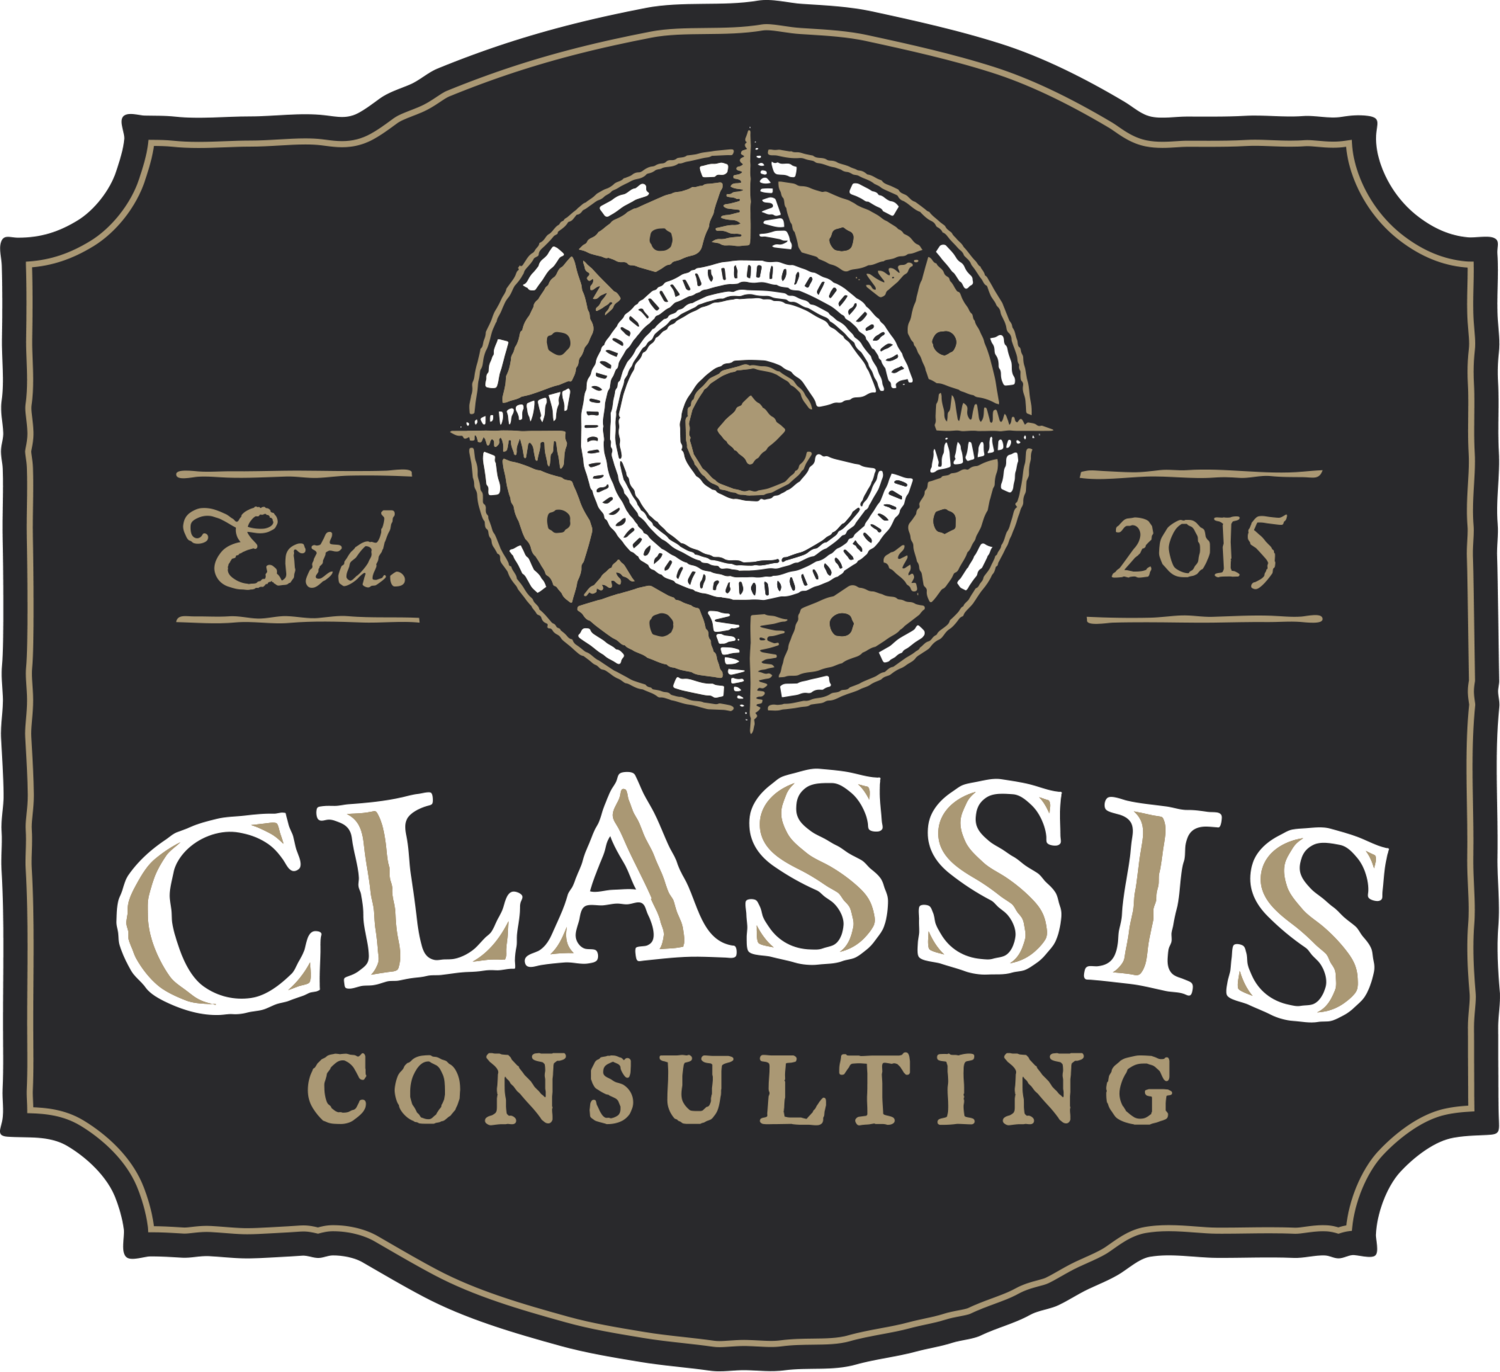 CLASSIS CONSULTING